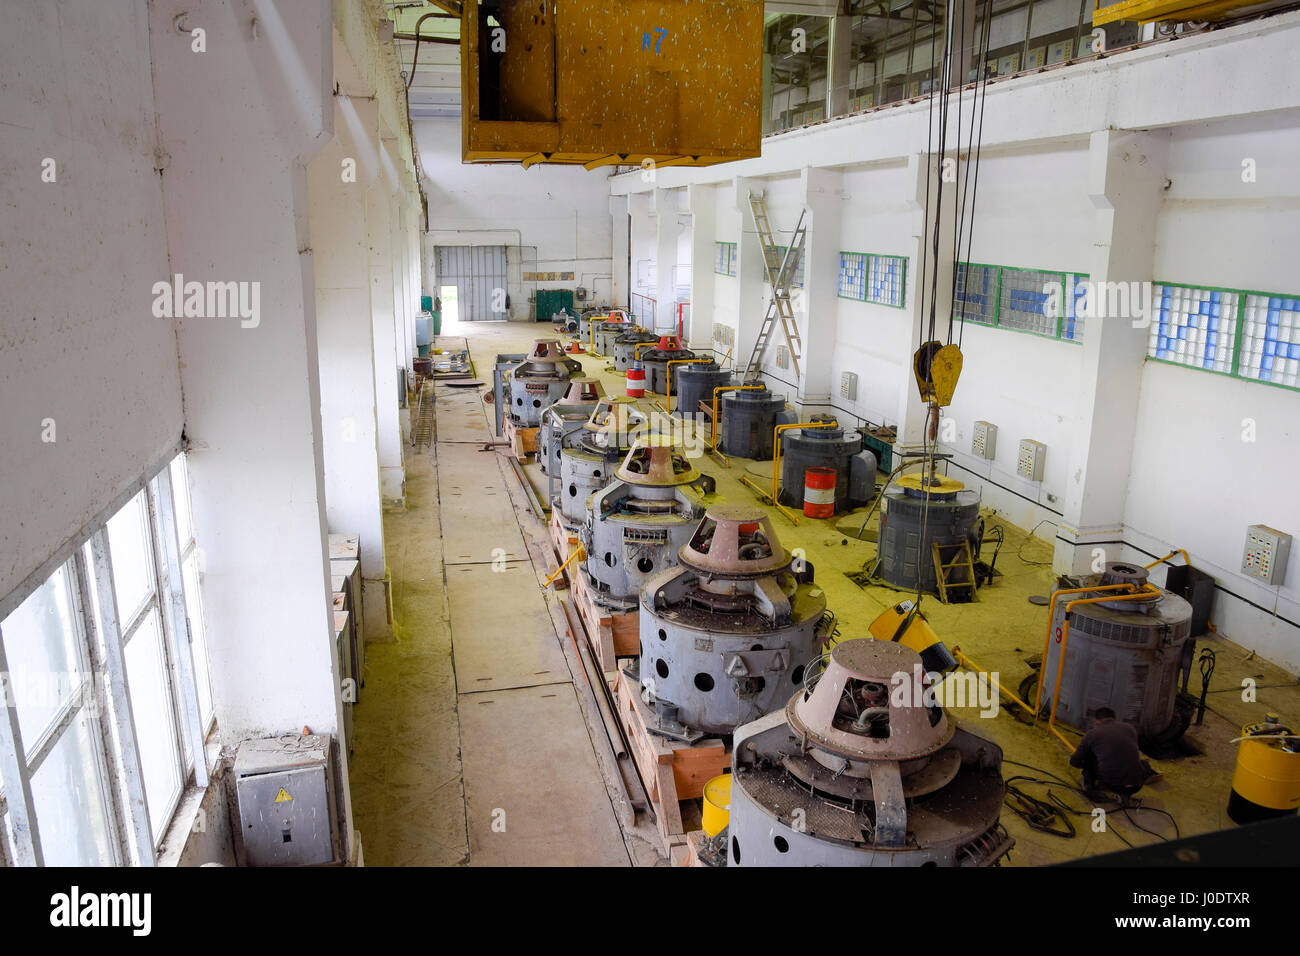 Engines of water pumps at a water pumping station pumping engines of water pumps at a water pumping station pumping irrigation system of rice fields sciox Image collections